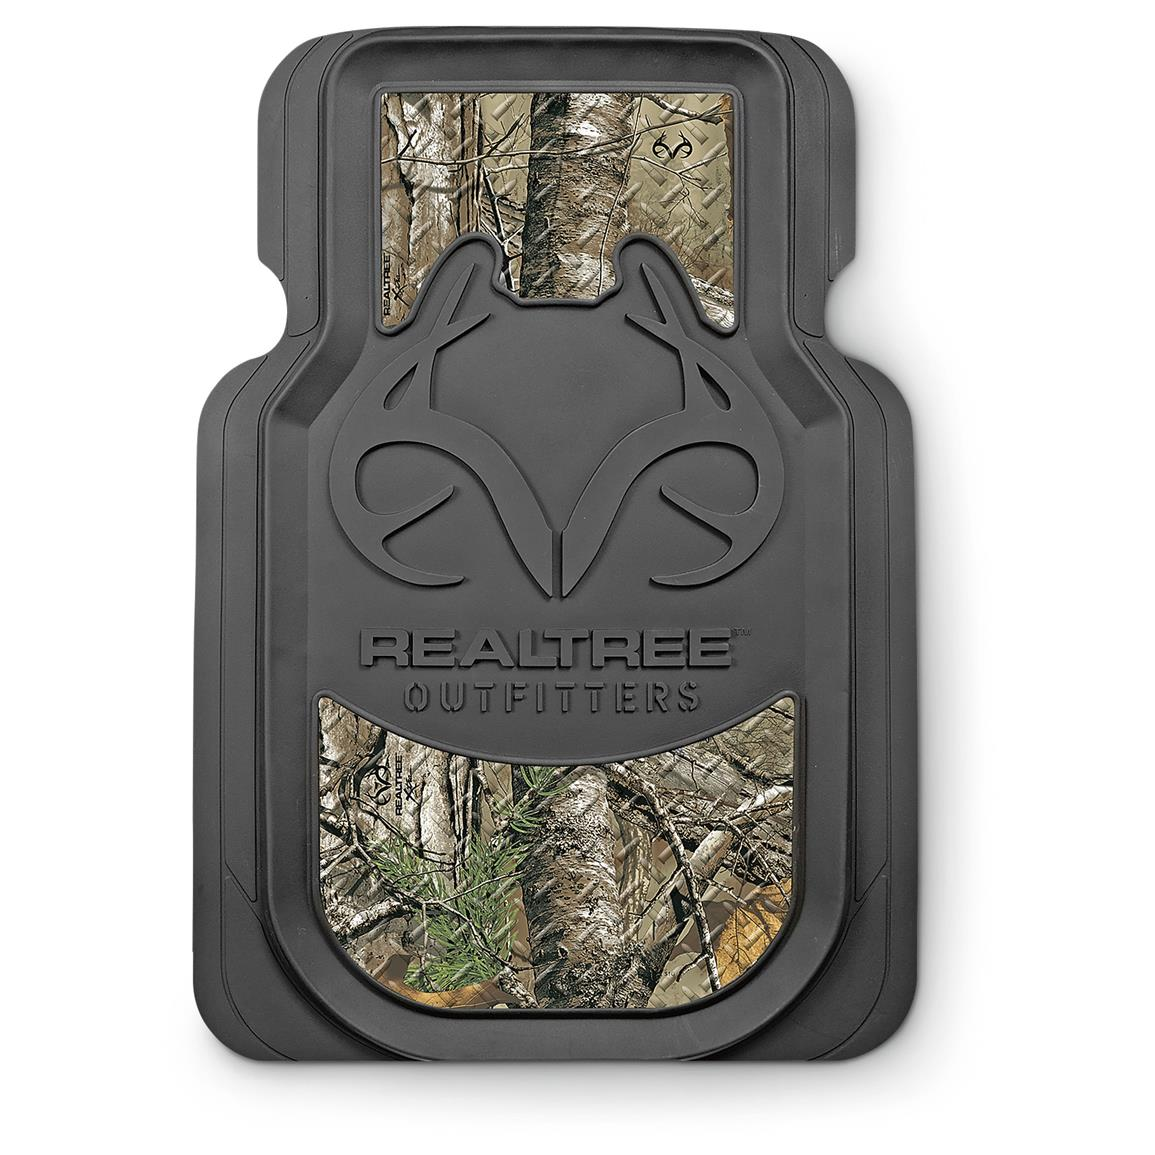 2-Pk. of Universal Camo Floor Mats, Realtree Outfitters